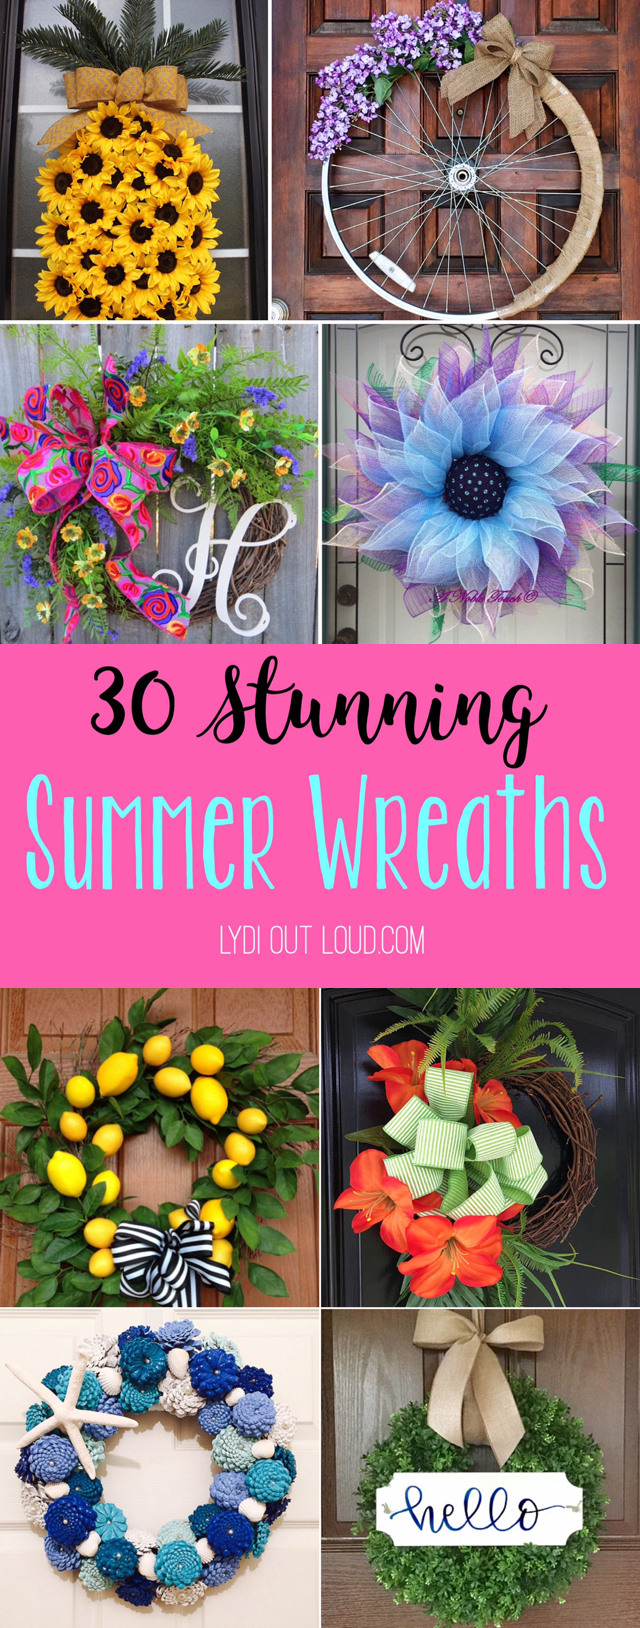 30 Stunning Summer Wreaths to Buy or DIY!